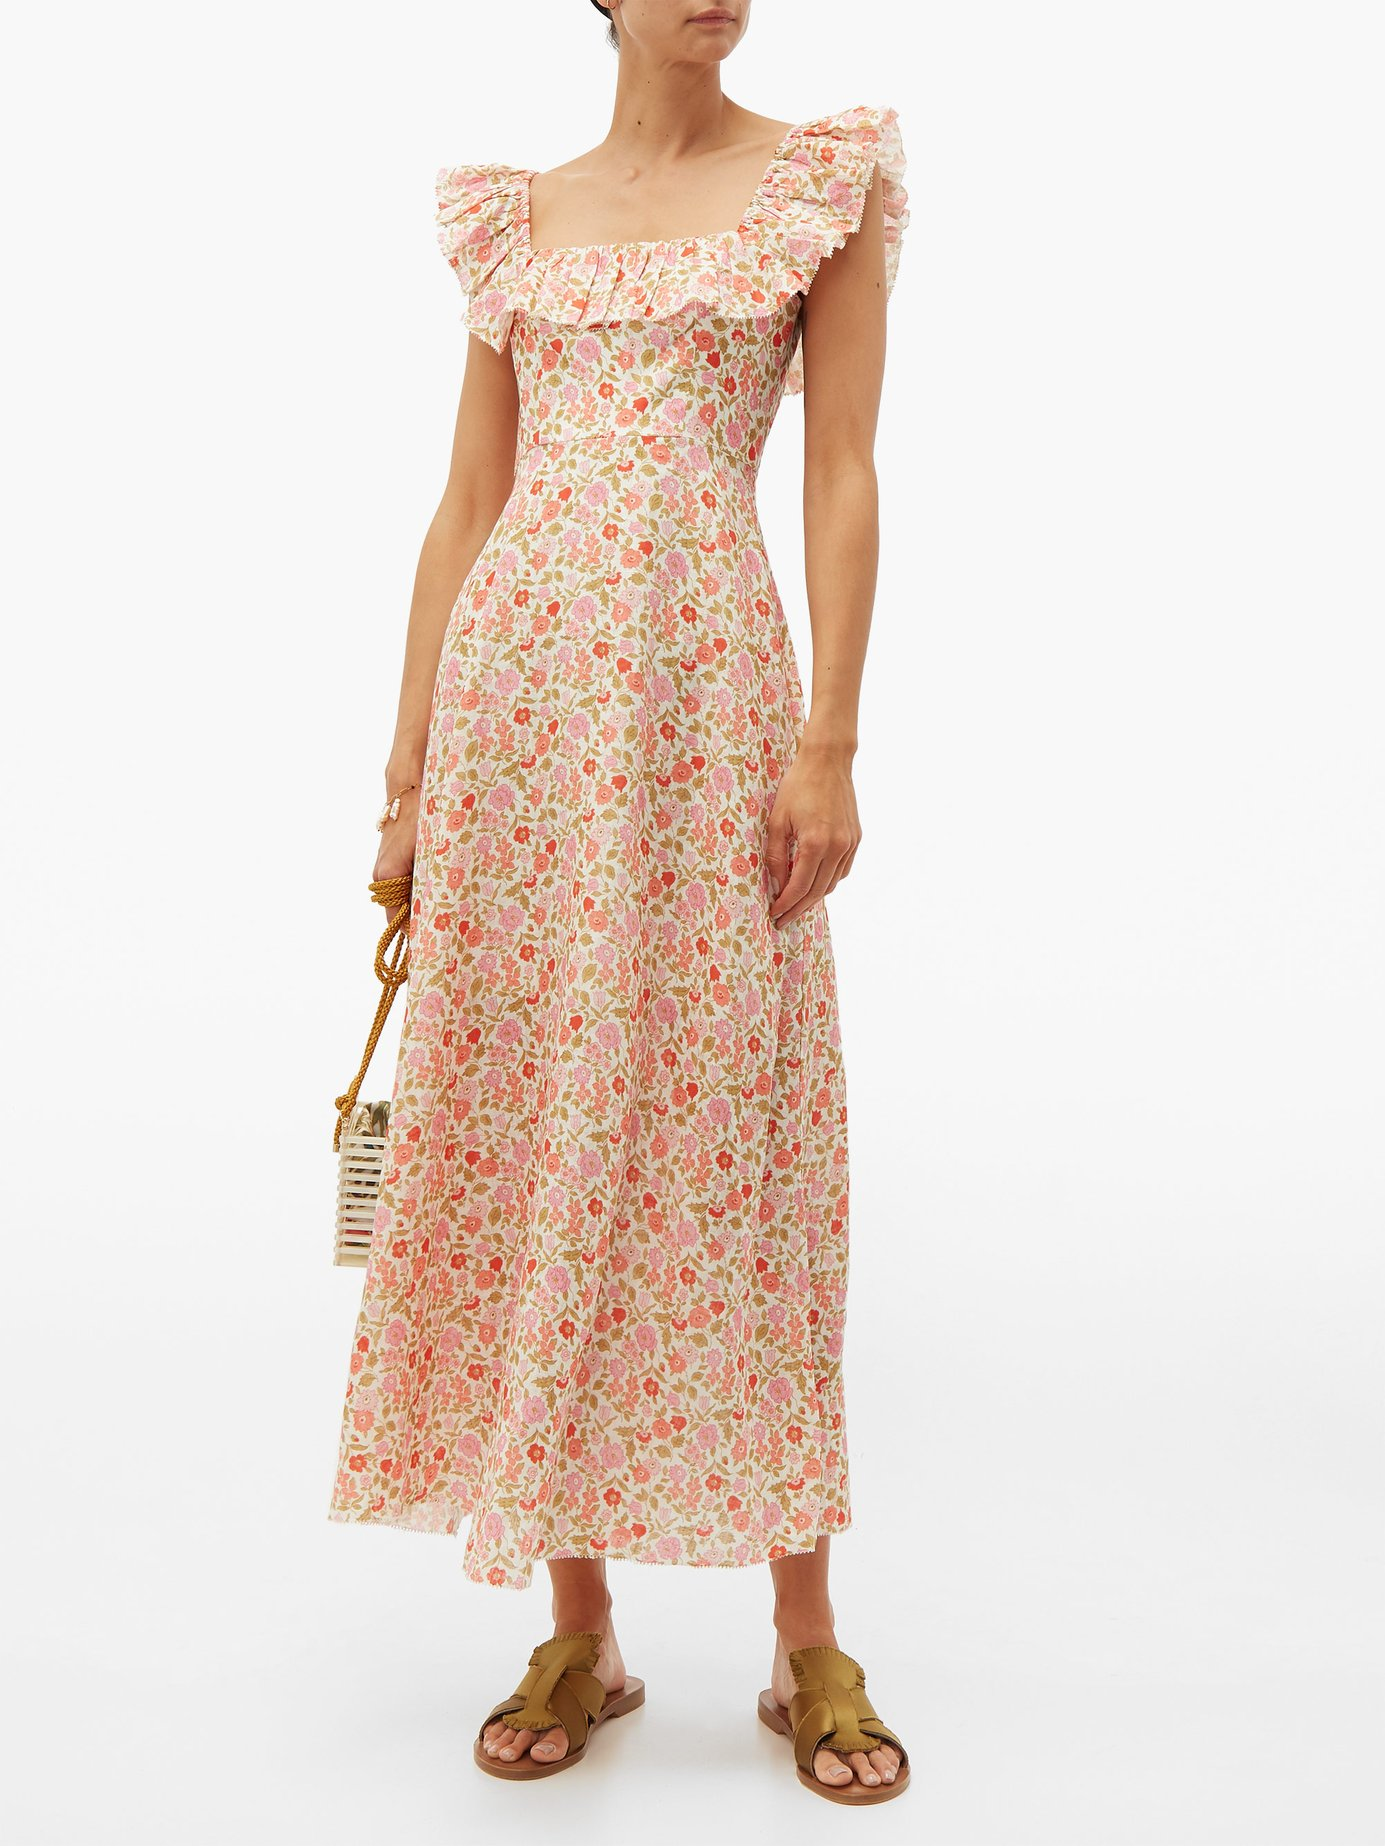 this retro ditsy  floral dress  is making us swoon!